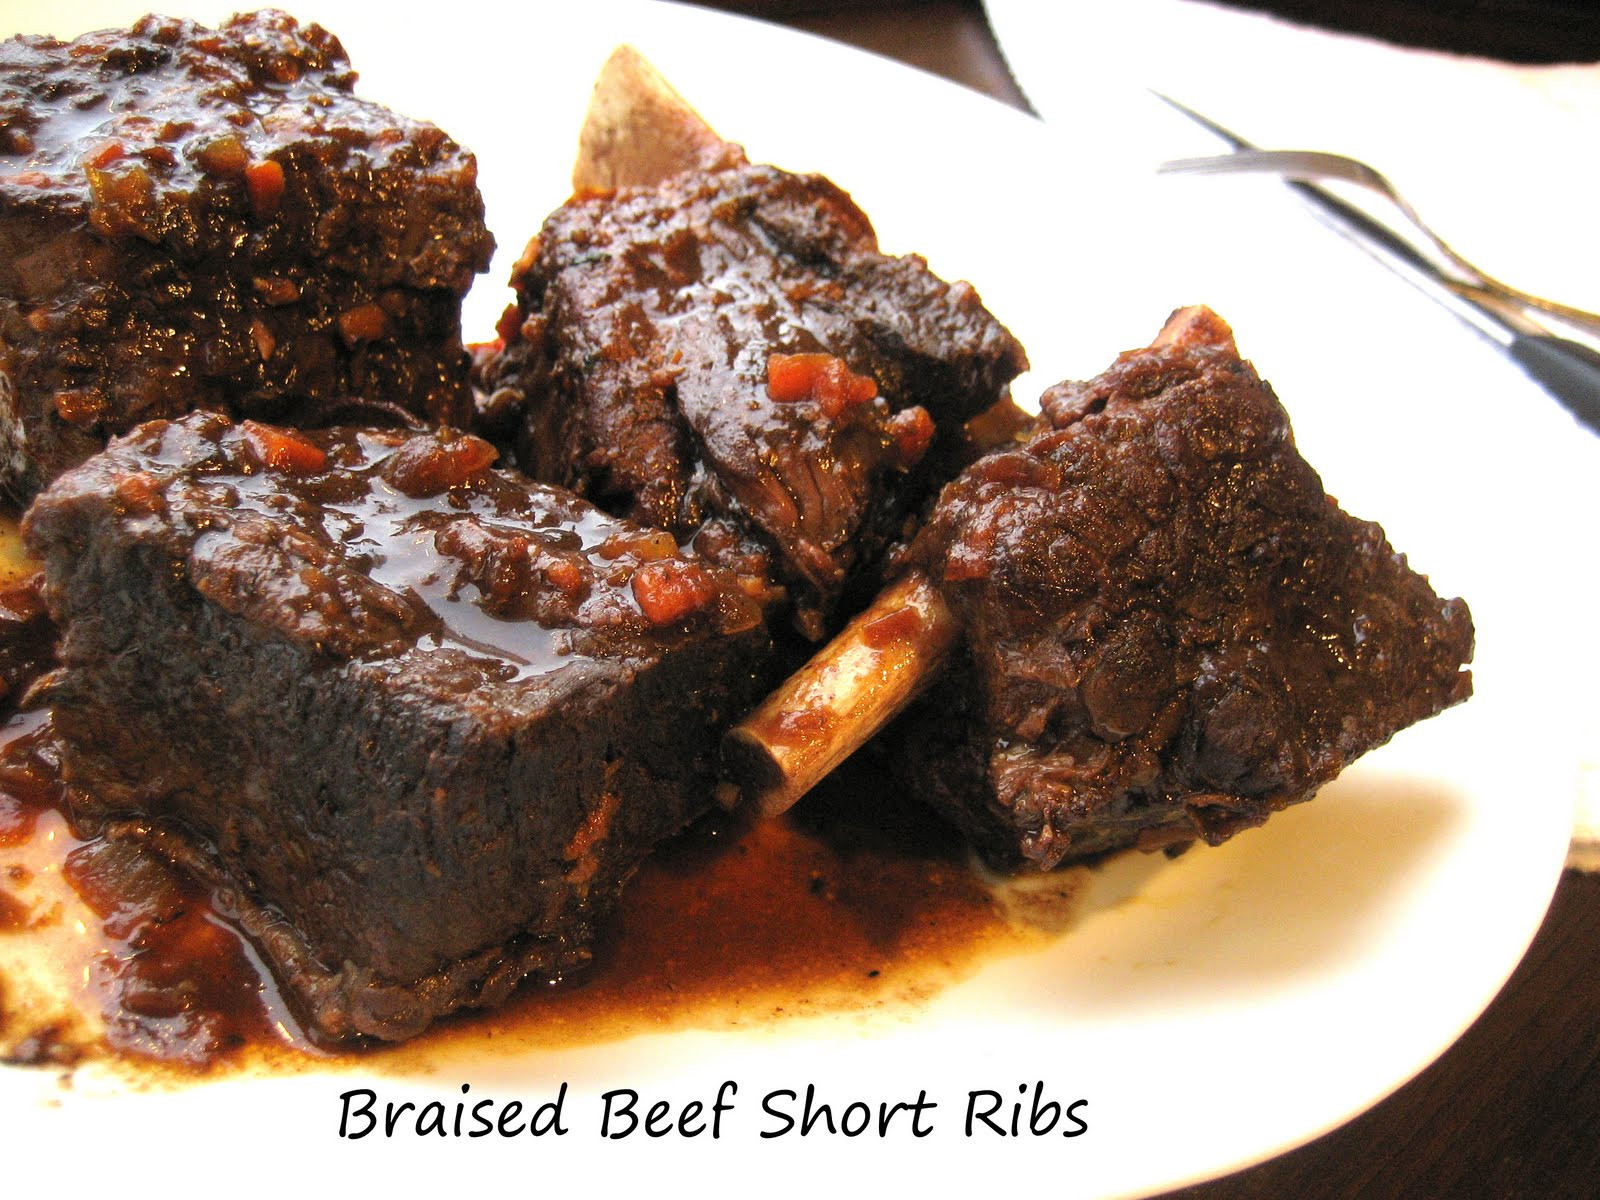 Braised Beef Short Ribs  Home Cooking In Montana Braised Beef Short Ribs